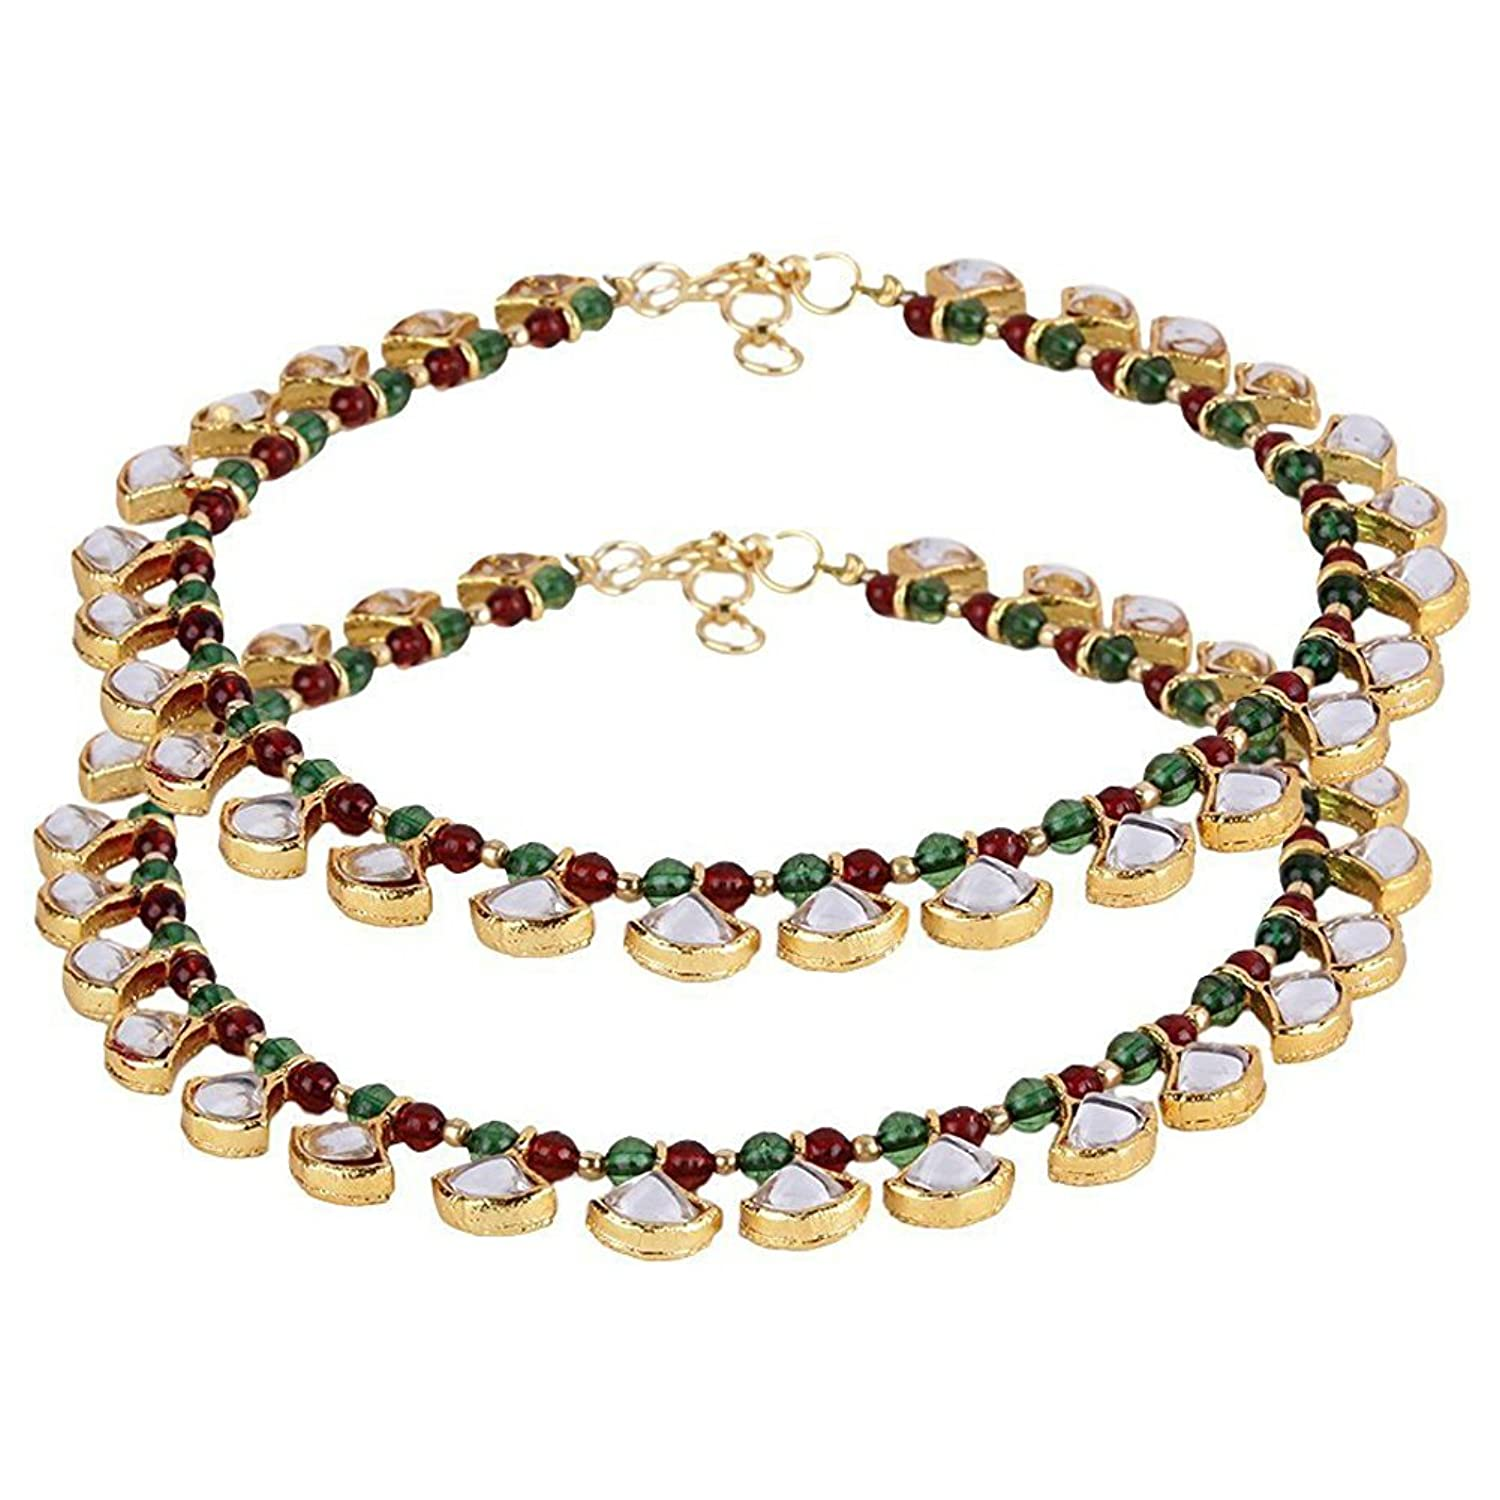 zoom anklet this chain shopping layered online explore femnmas to look image multi gold anklets buy hover over for by